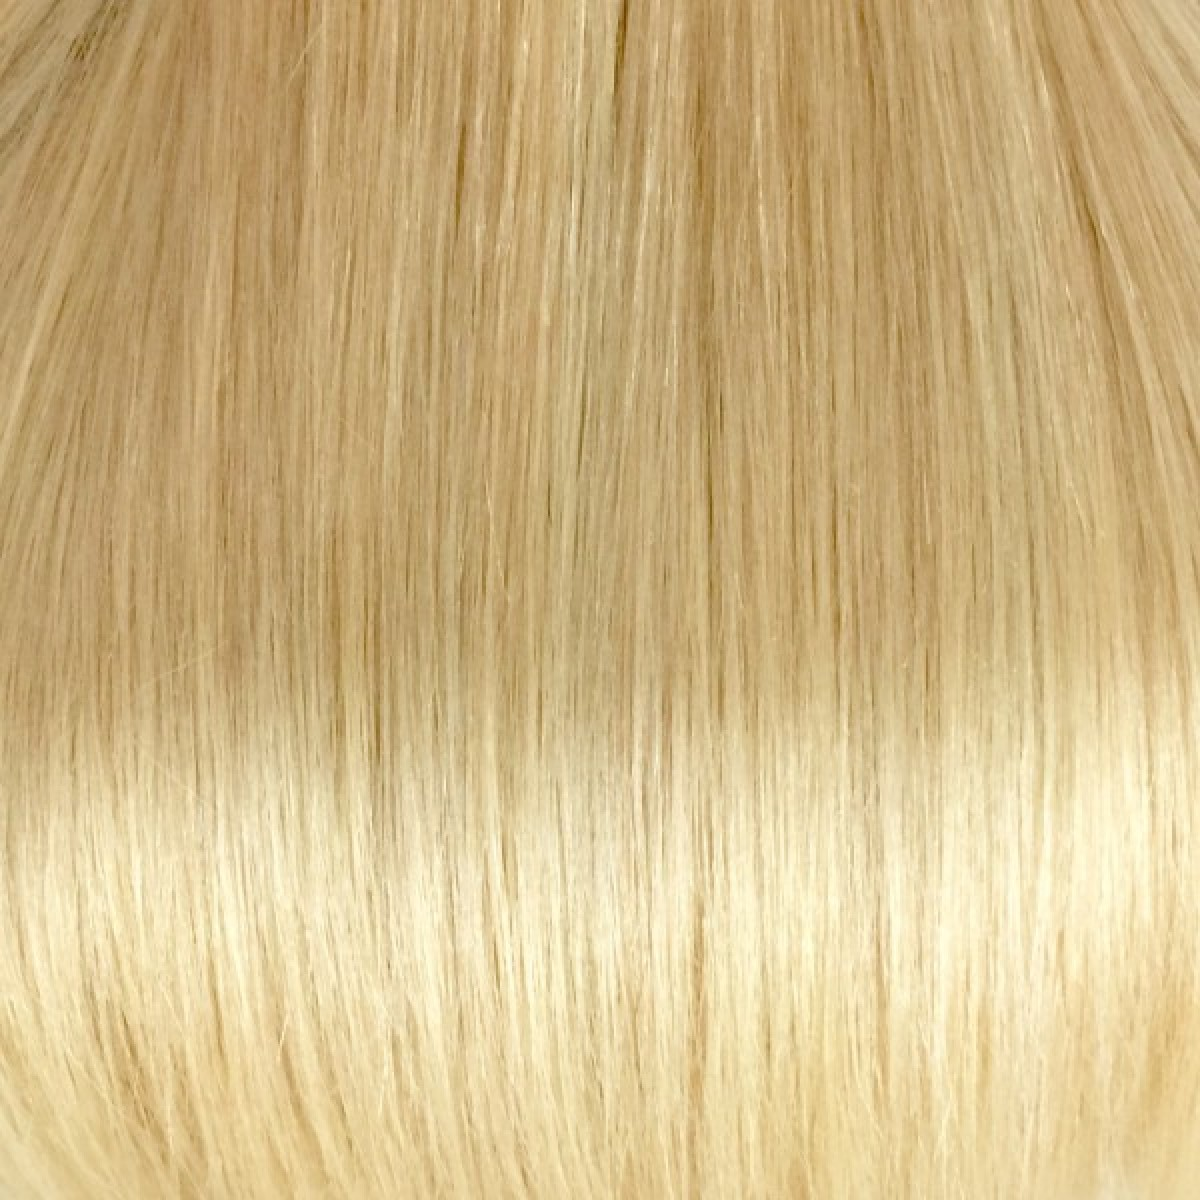 Platinum Blonde 60 20 Inch Clip In Human Hair Extensions 140grams